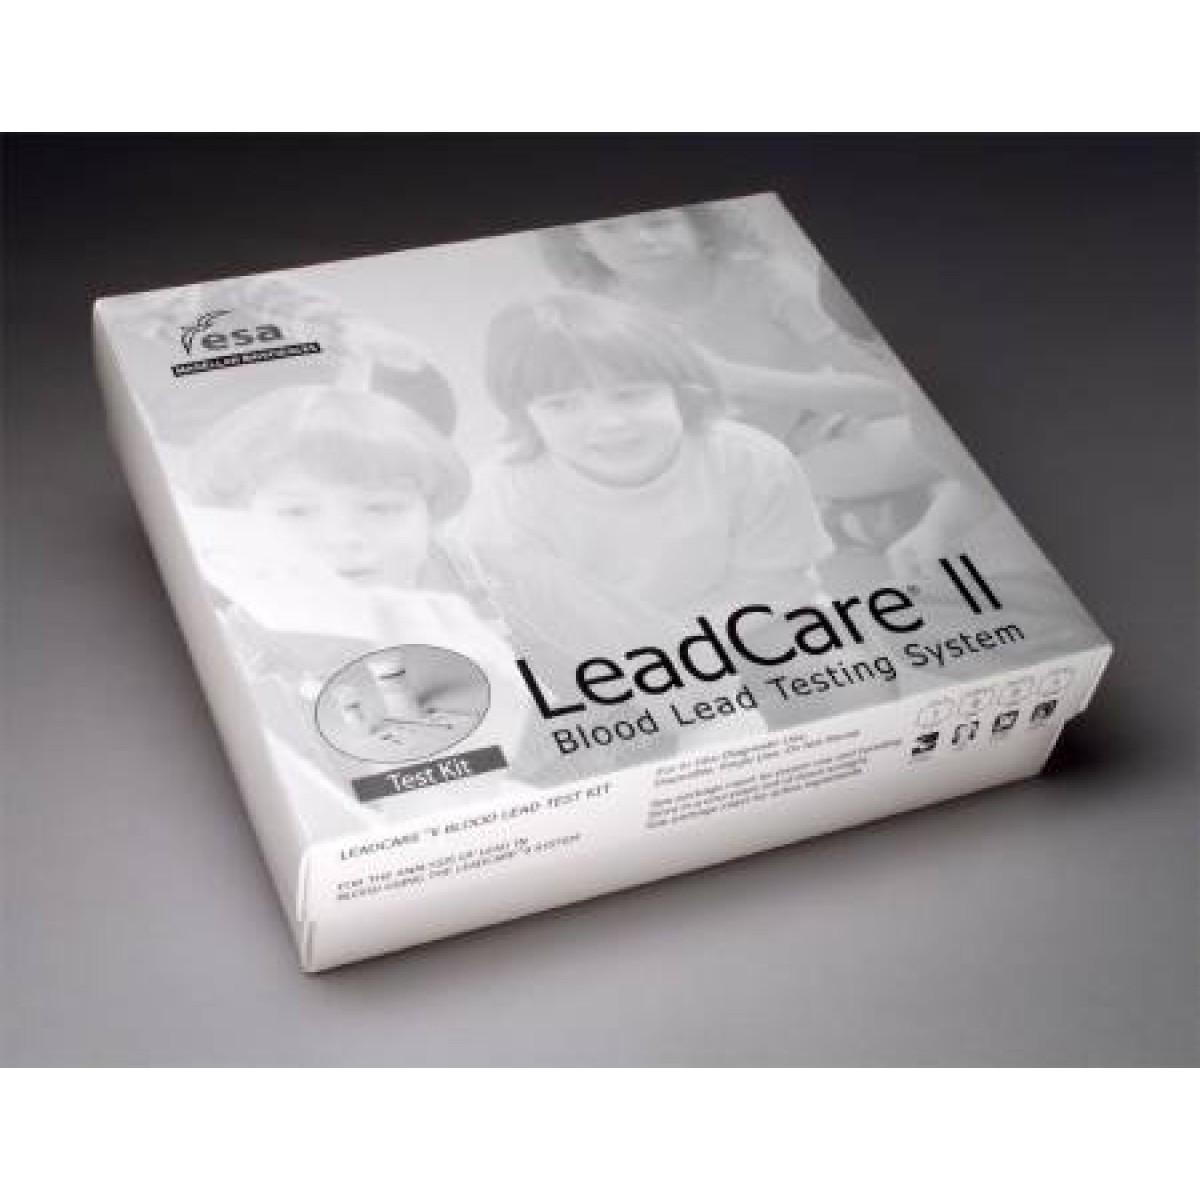 Leadcare Ii Test Kit 563927